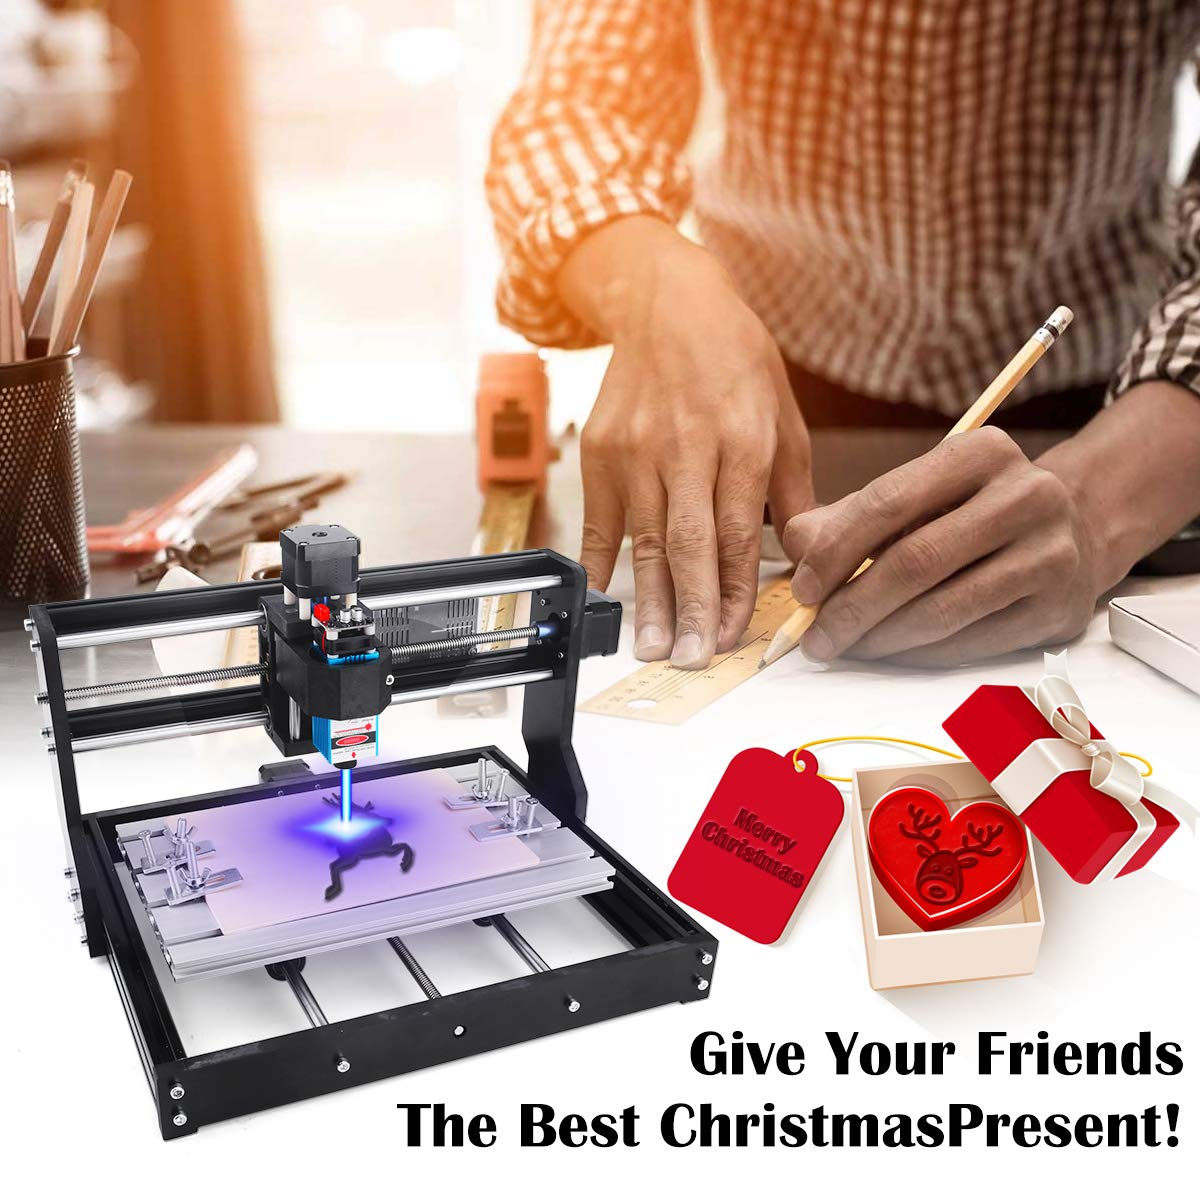 2-in-1 5500mW Laser Engraver CNC 3018 Pro Engraving Machine Working Area 300x180x45mm GRBL Control 3 Axis CNC Router Kit Wood Carving Engraving Machine with Offline Controller